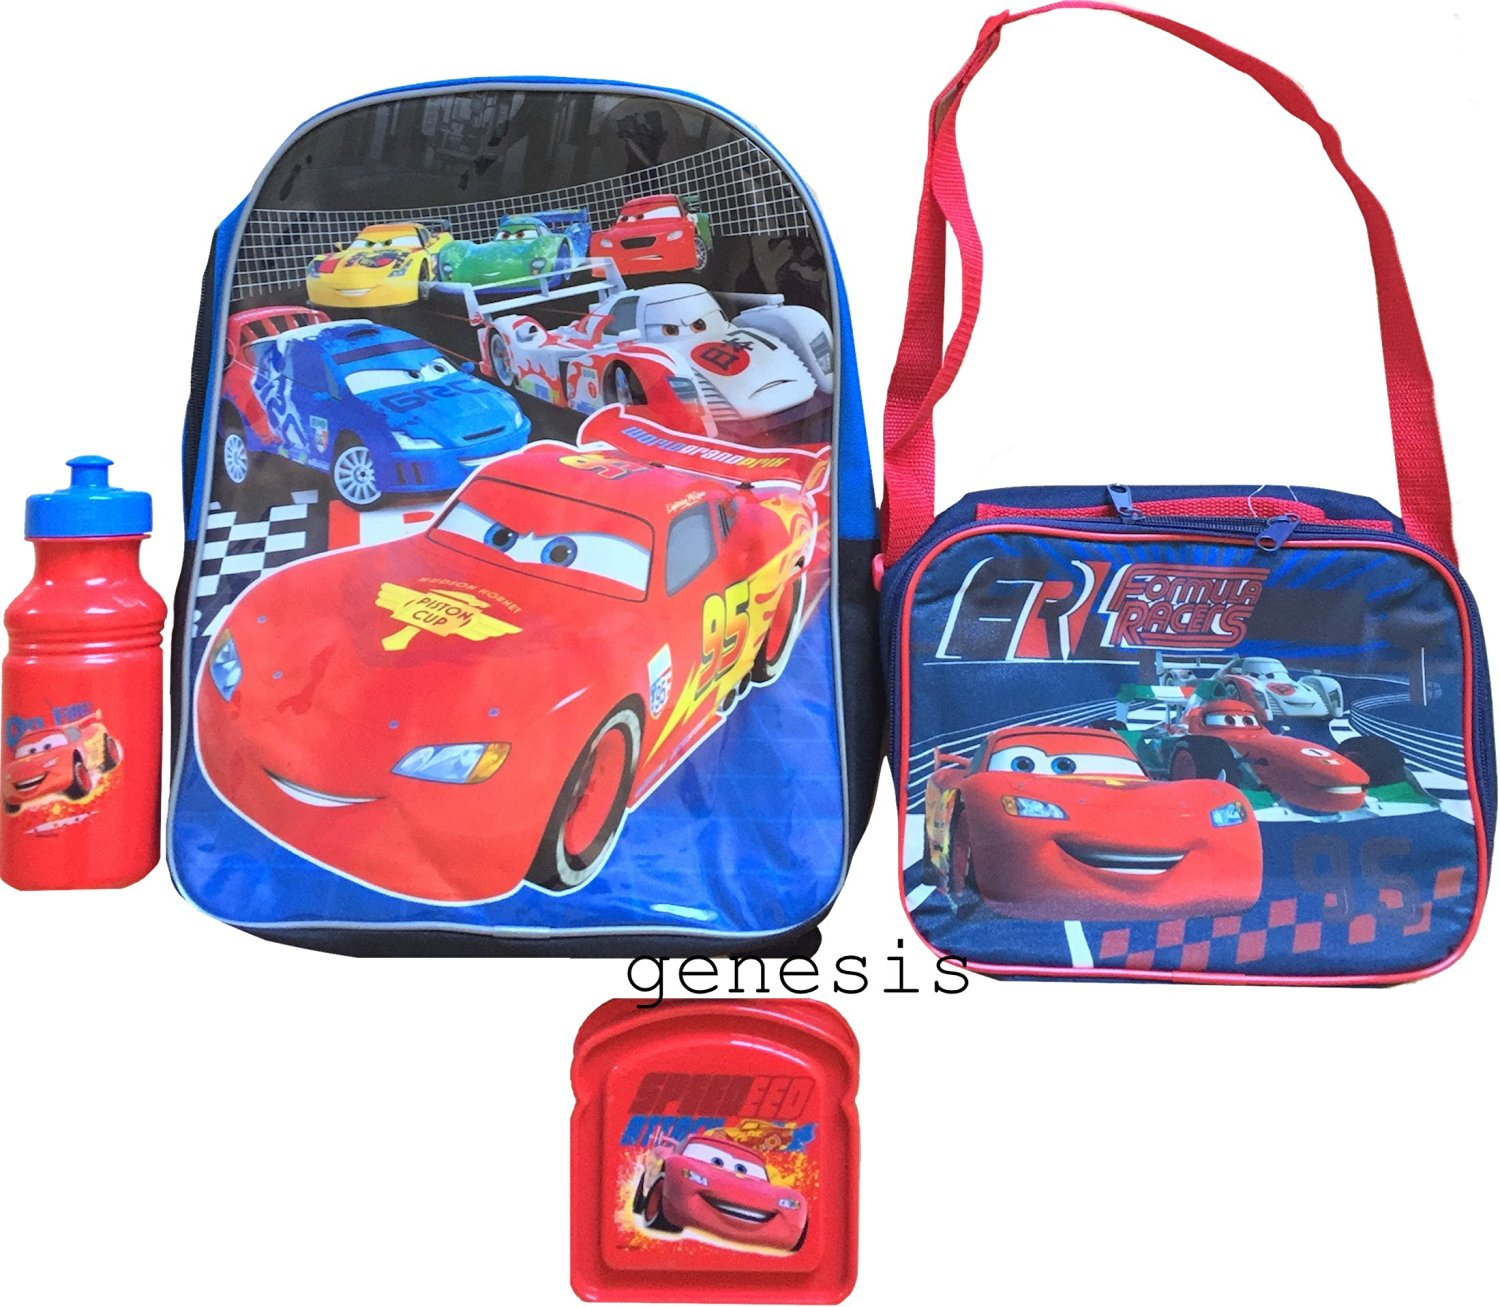 Disney Cars Lunch Kit Cars Backpack With Shoulder Strap Lunch Box, Sandwich Container & Bottle